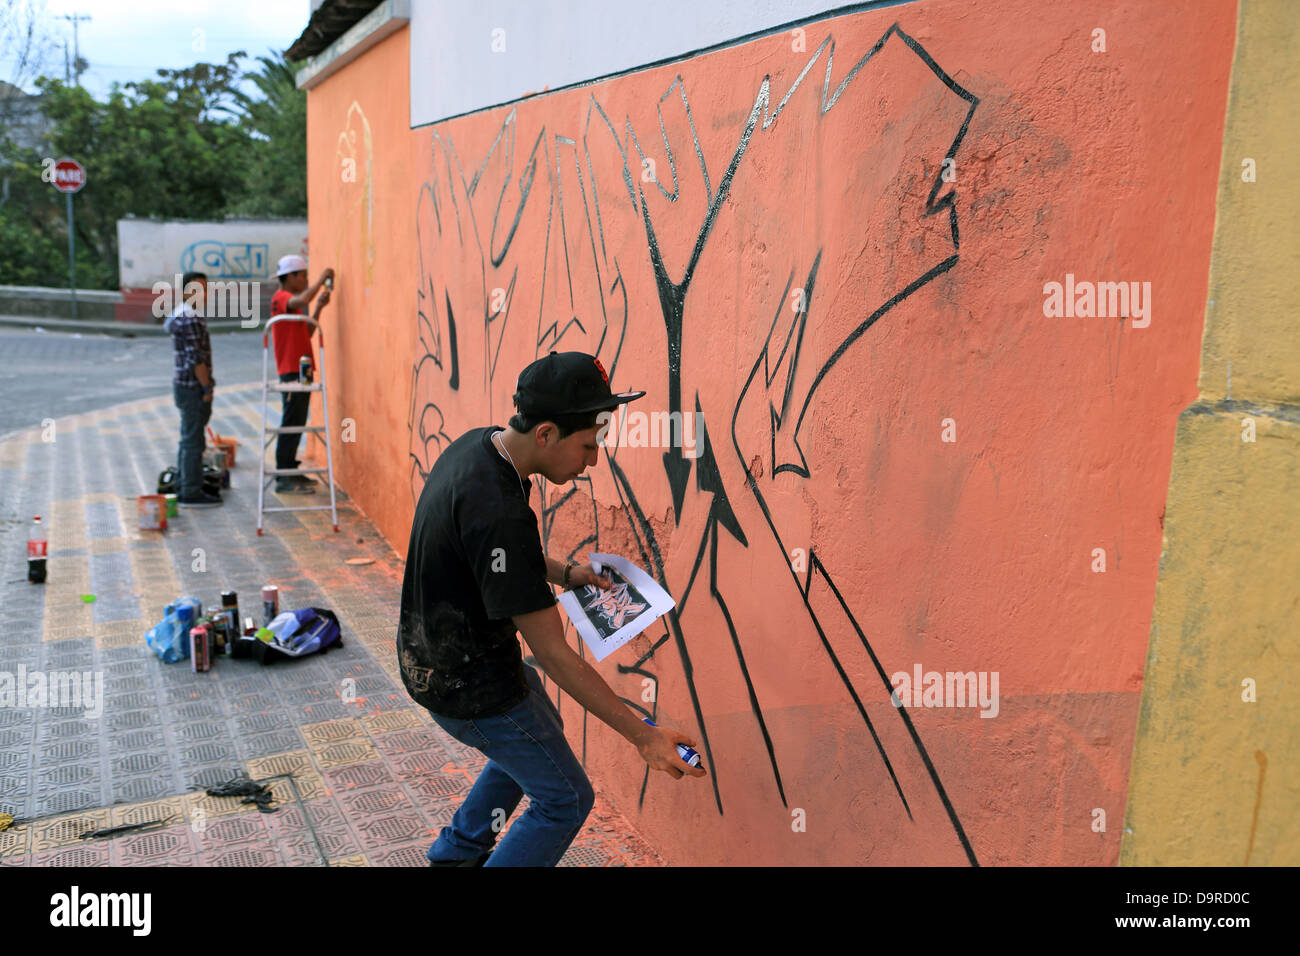 Teenage street artists creating graffiti with local authority permission in the streets of Otavalo, Ecuador - Stock Image